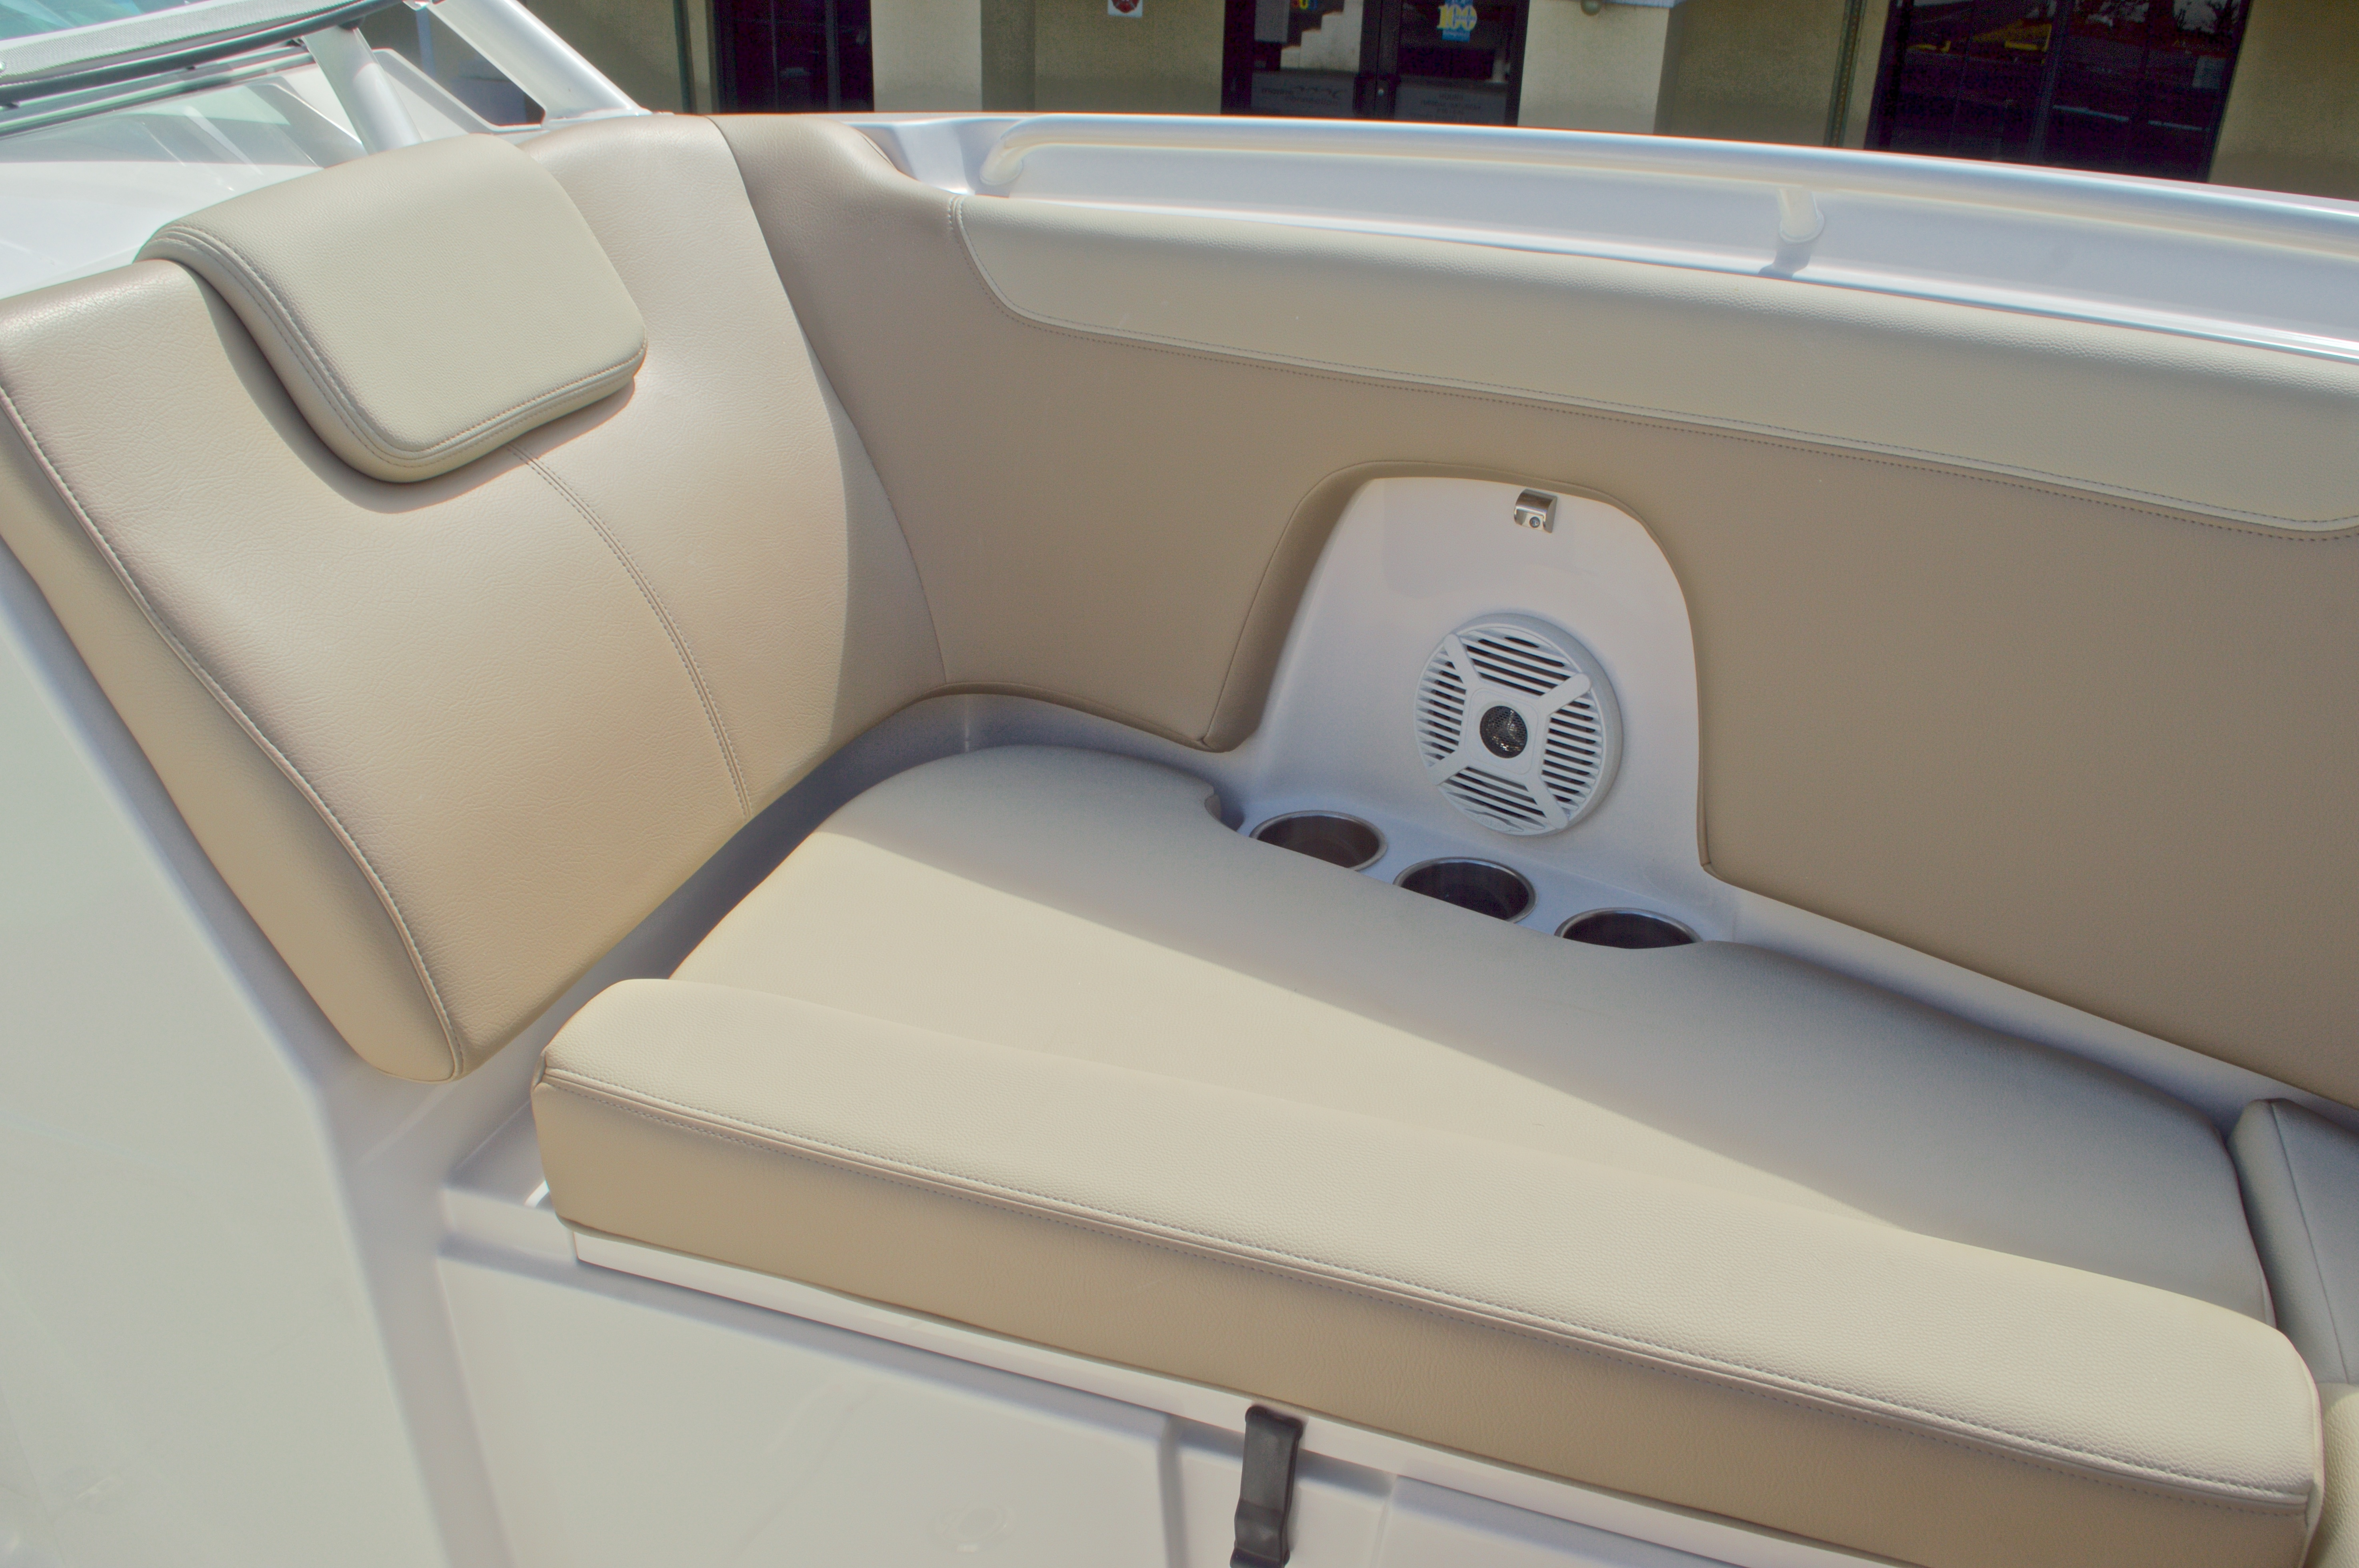 Thumbnail 63 for New 2017 Sailfish 275 Dual Console boat for sale in West Palm Beach, FL